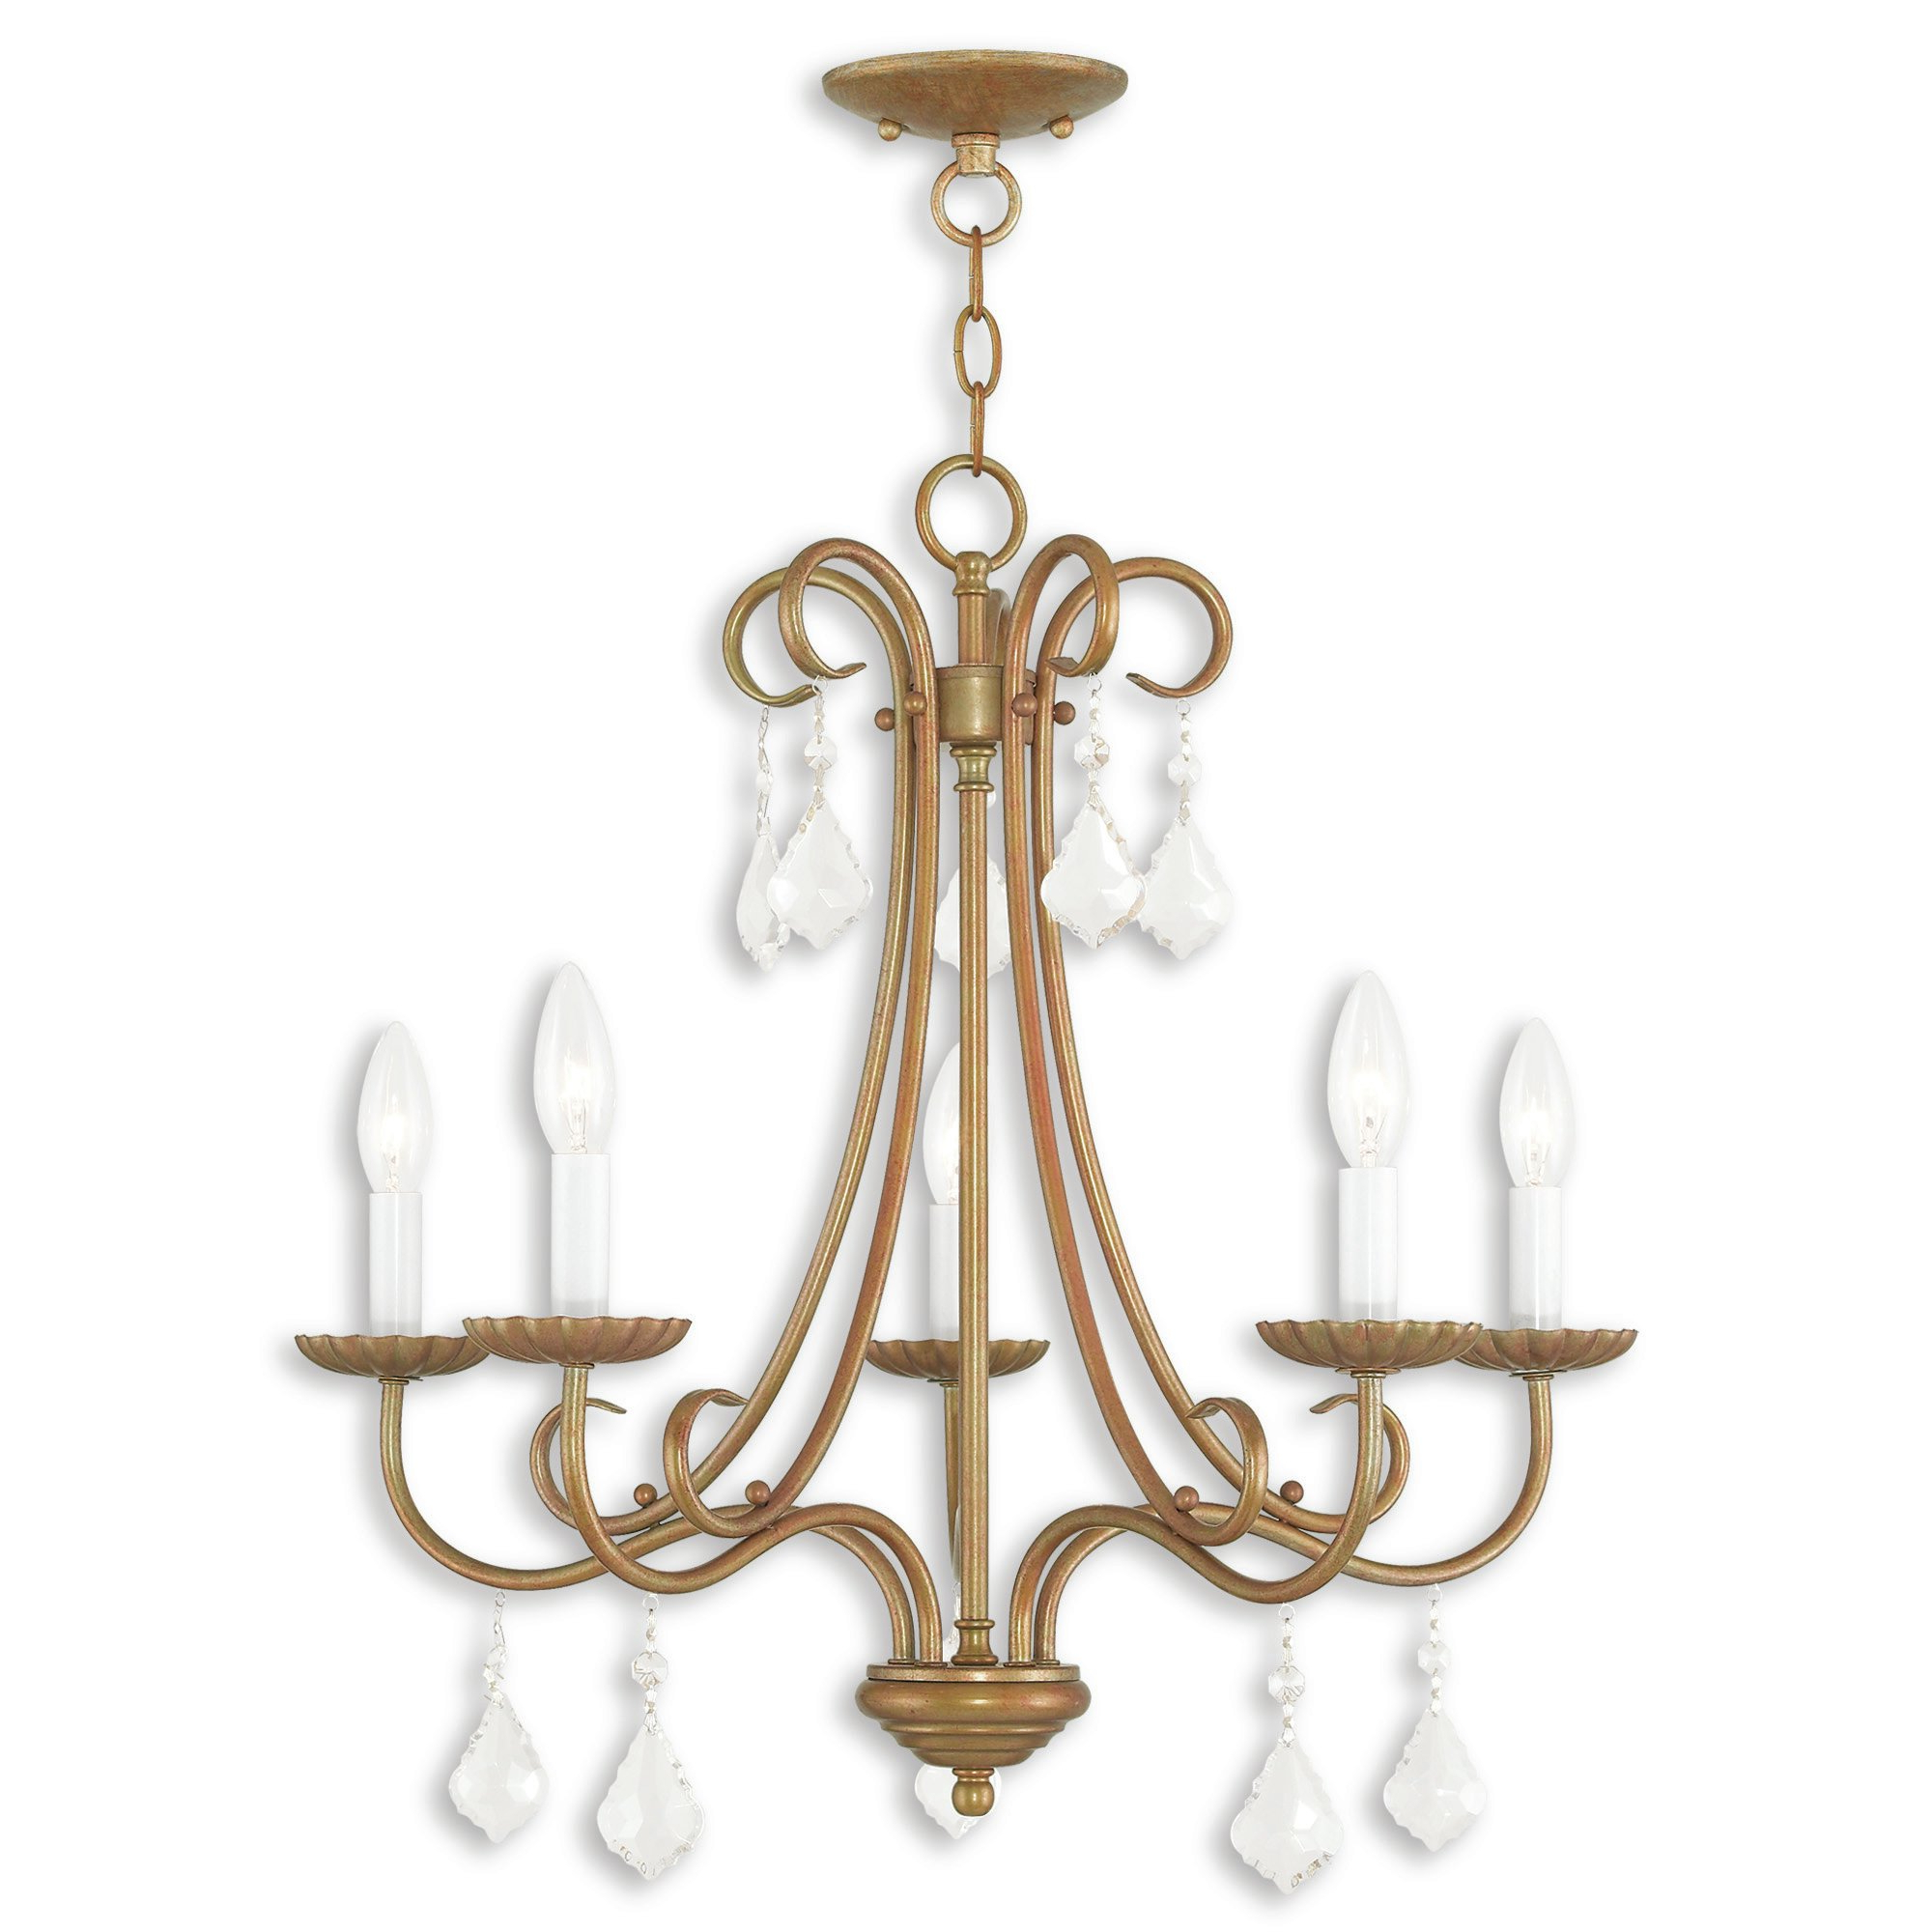 2019 Devan 5 Light Candle Style Chandelier Within Blanchette 5 Light Candle Style Chandeliers (View 1 of 20)